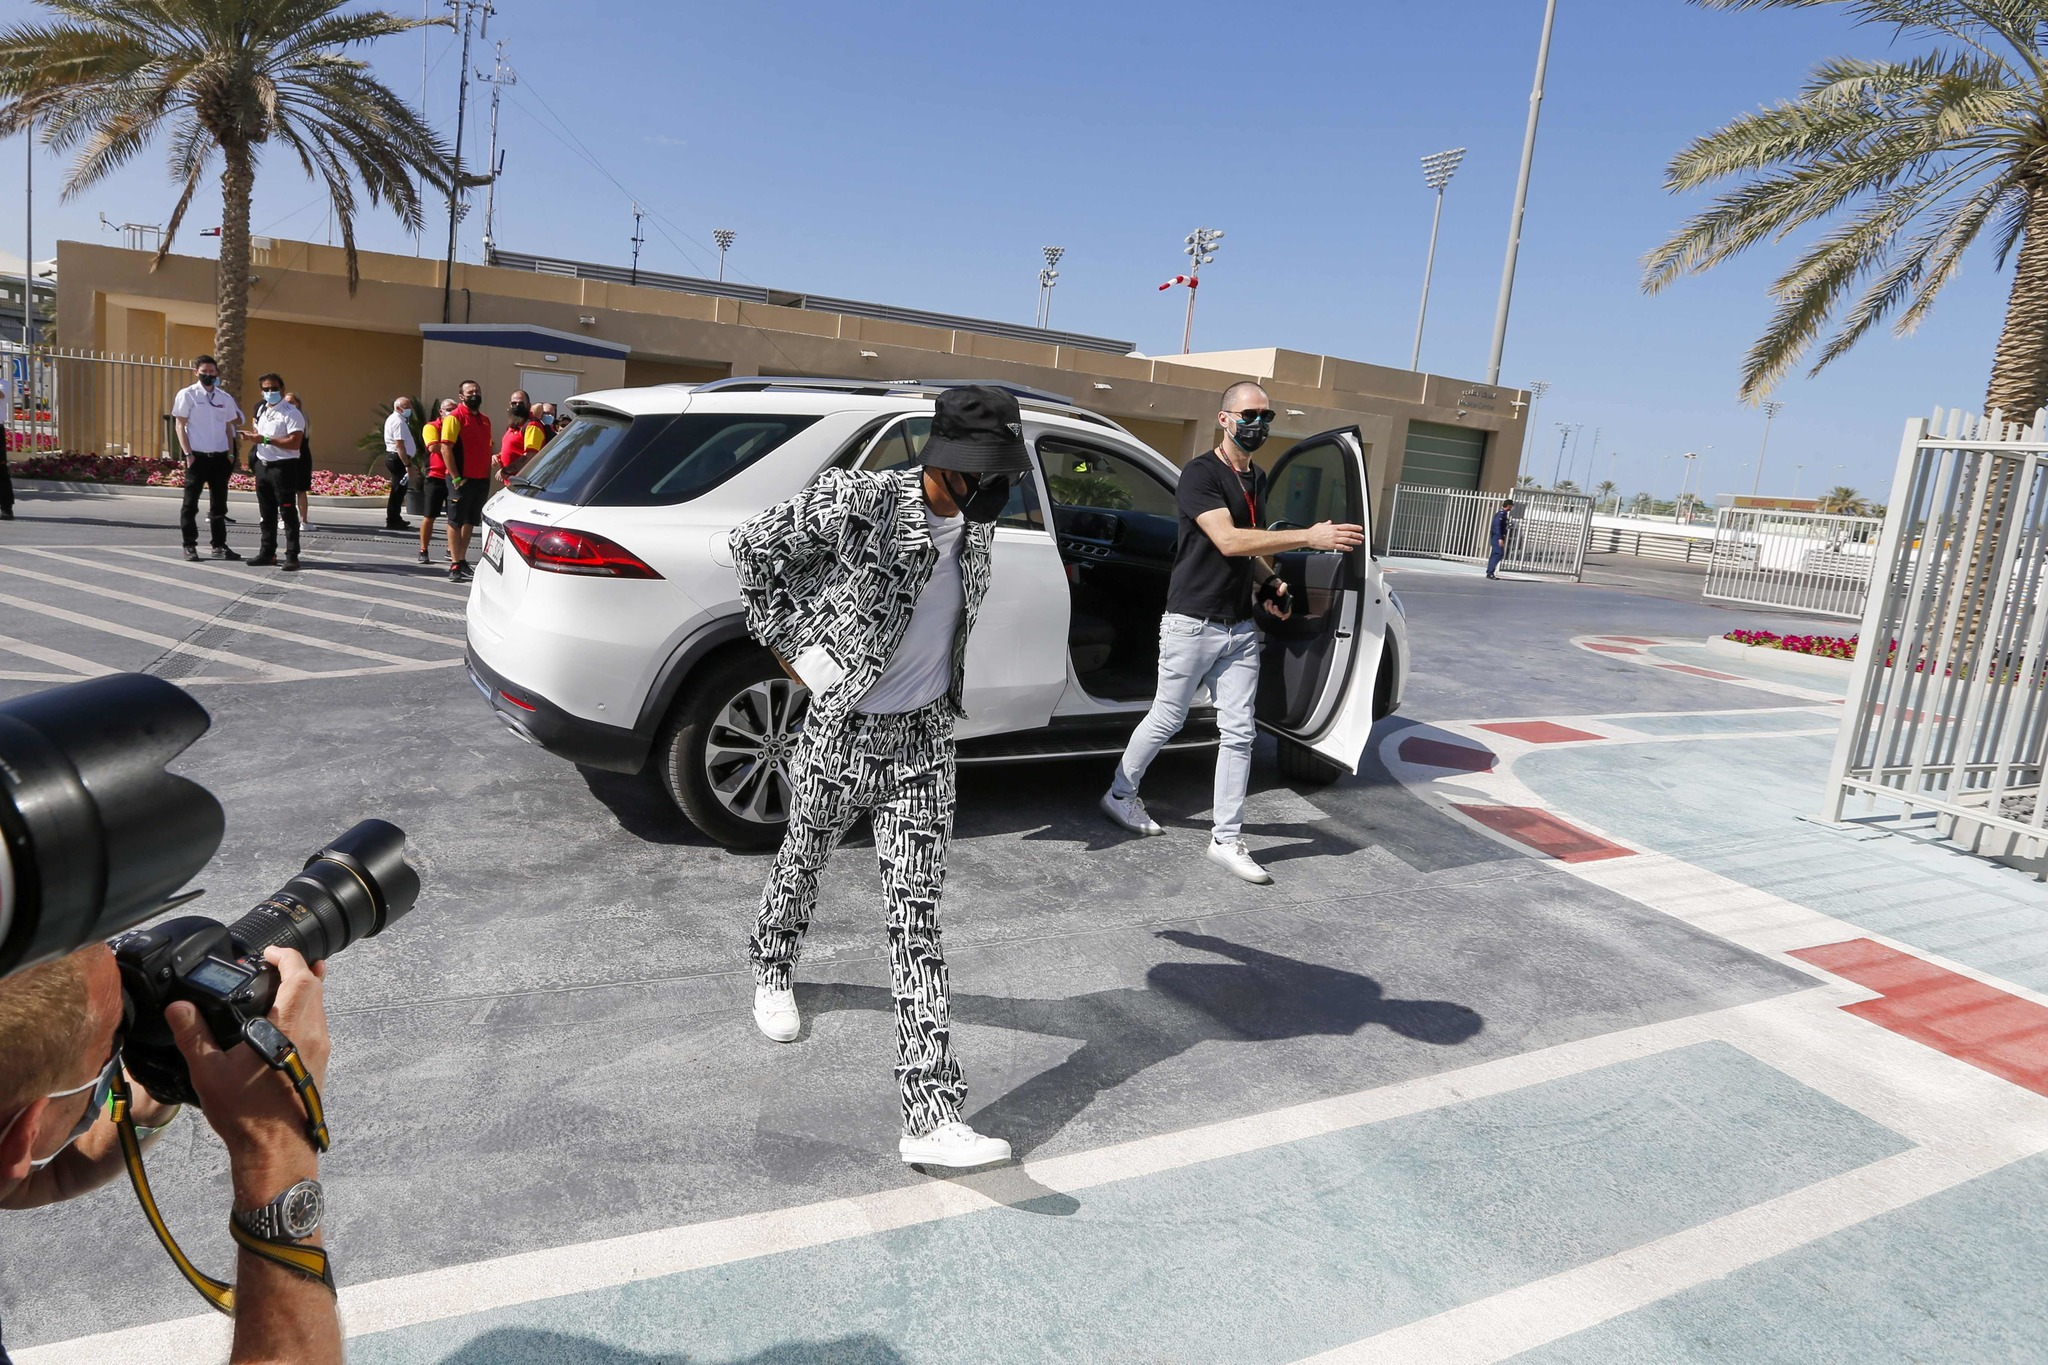 Mercedes British driver lt;HIT gt;Lewis lt;/HIT gt; lt;HIT gt;Hamilton lt;/HIT gt; arrives for the first practice session ahead of the Abu Dhabi Formula One Grand Prix at the Yas Marina Circuit in the Emirati city of Abu Dhabi on December 11, 2020. (Photo by HAMAD I MOHAMMED / POOL / AFP)